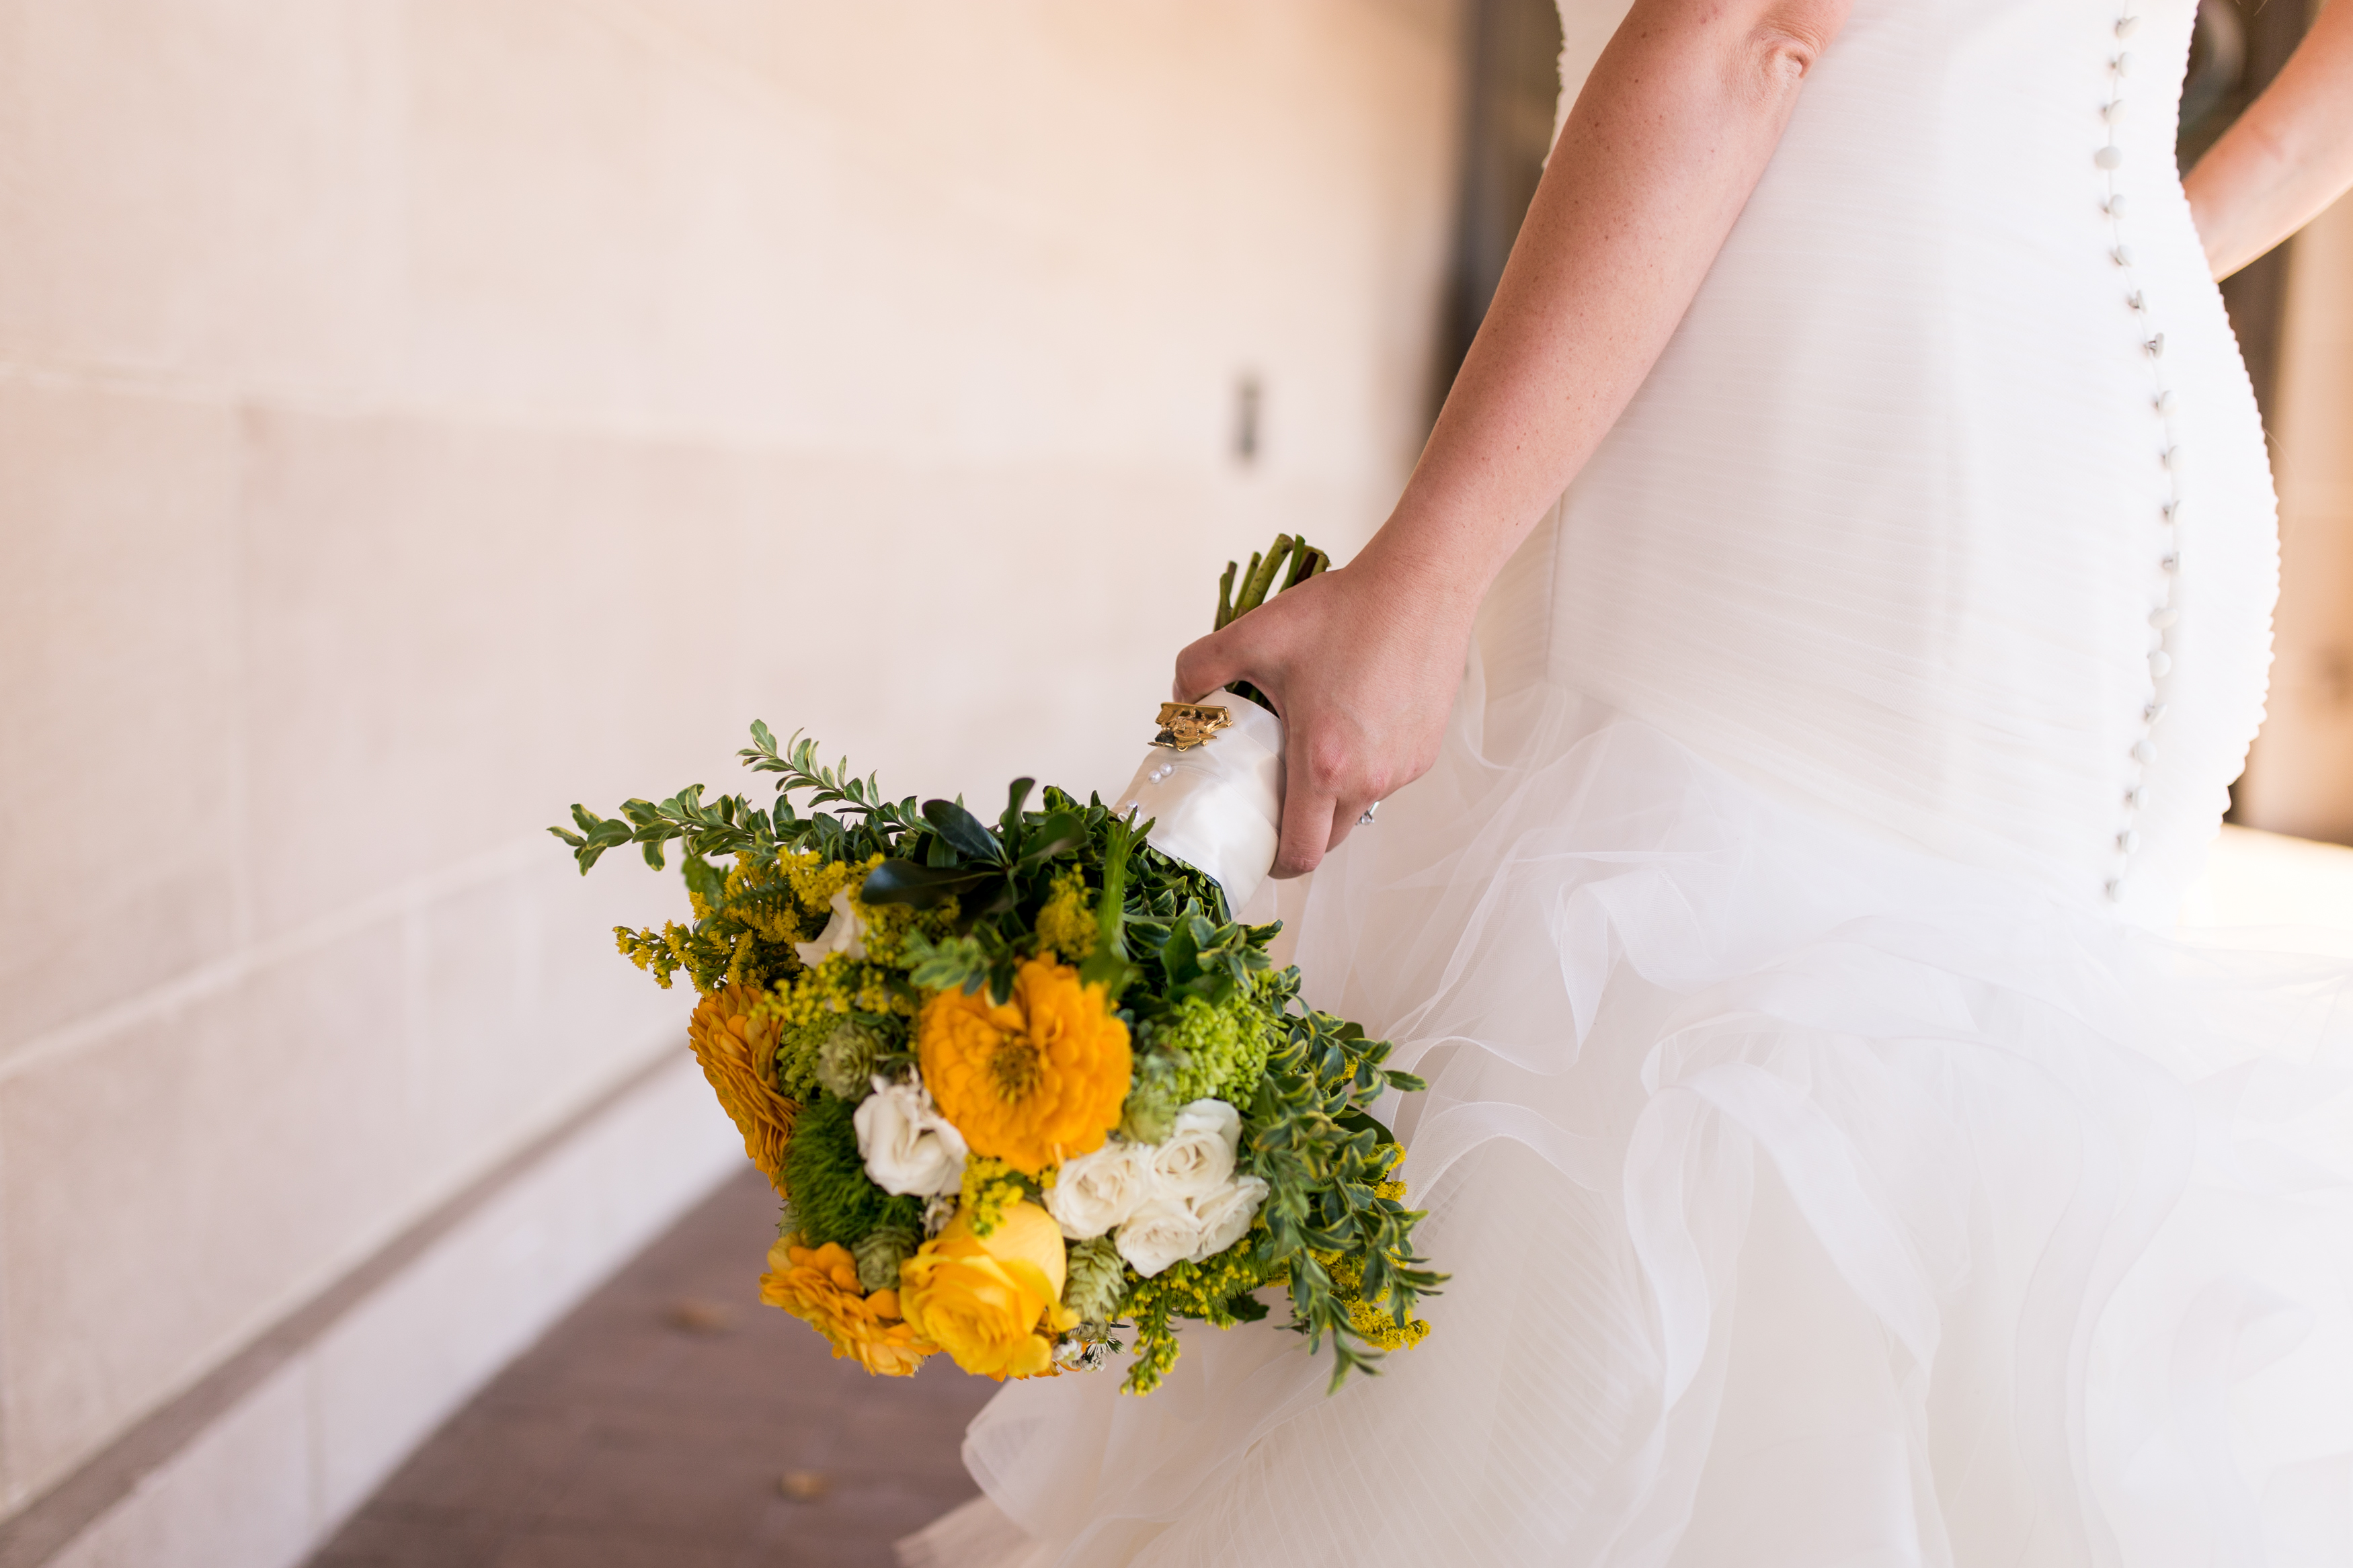 bridal bouquet from Dandelions Flowers and Gifts in Muncie Indiana wedding